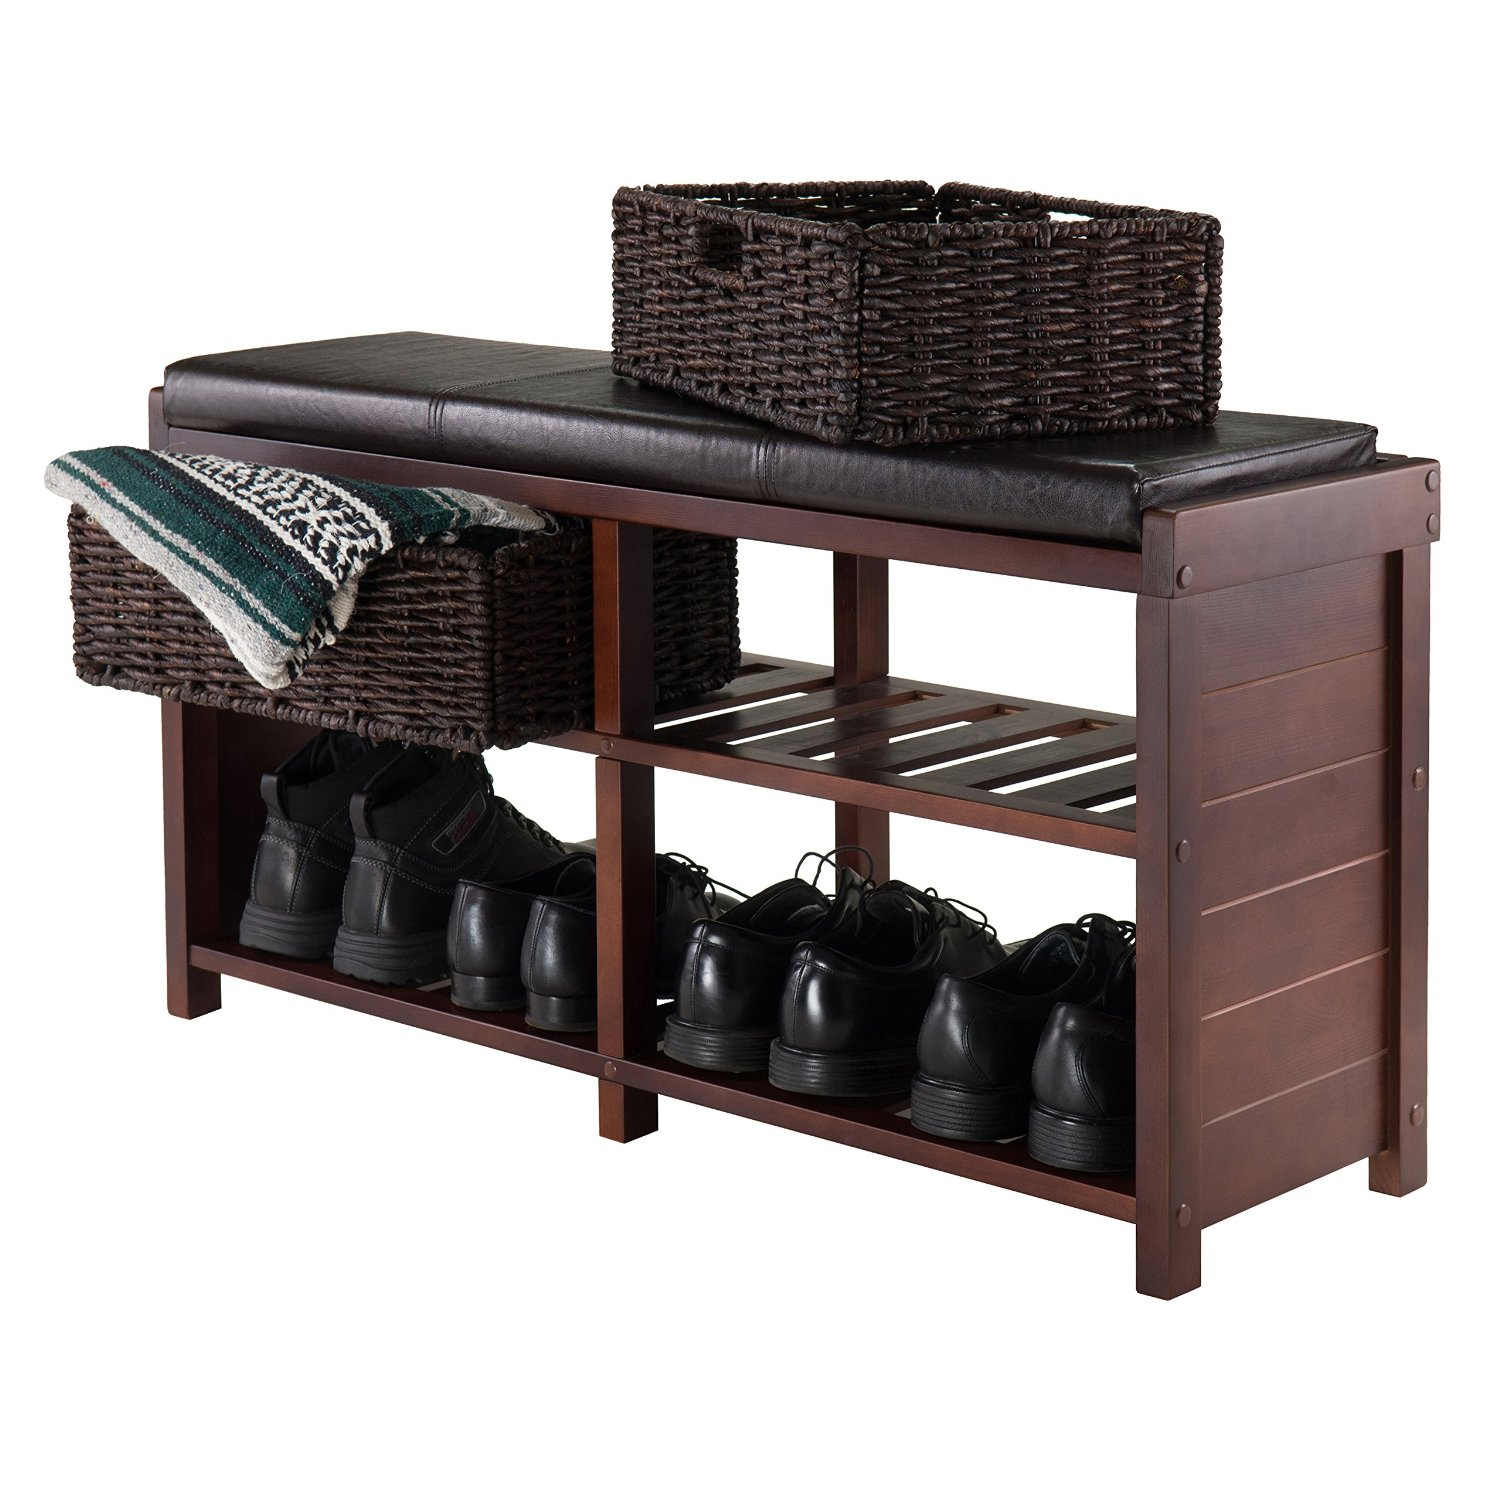 Total fab bedroom storage bench seat for Bedroom storage bench